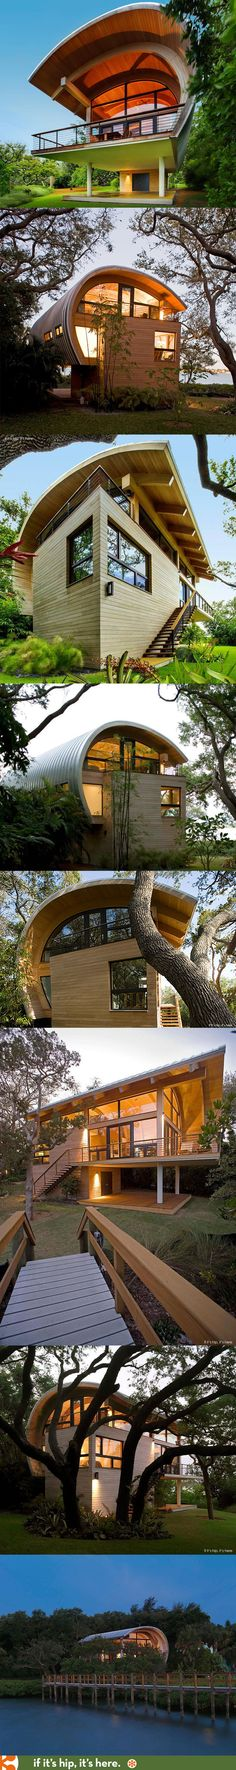 The Casey Key Guest House in Osprey, Florida. More pics and details at http://www.ifitshipitshere.com/award-winning-guest-house-florida-sweet-sparkman-architects-25-photos/